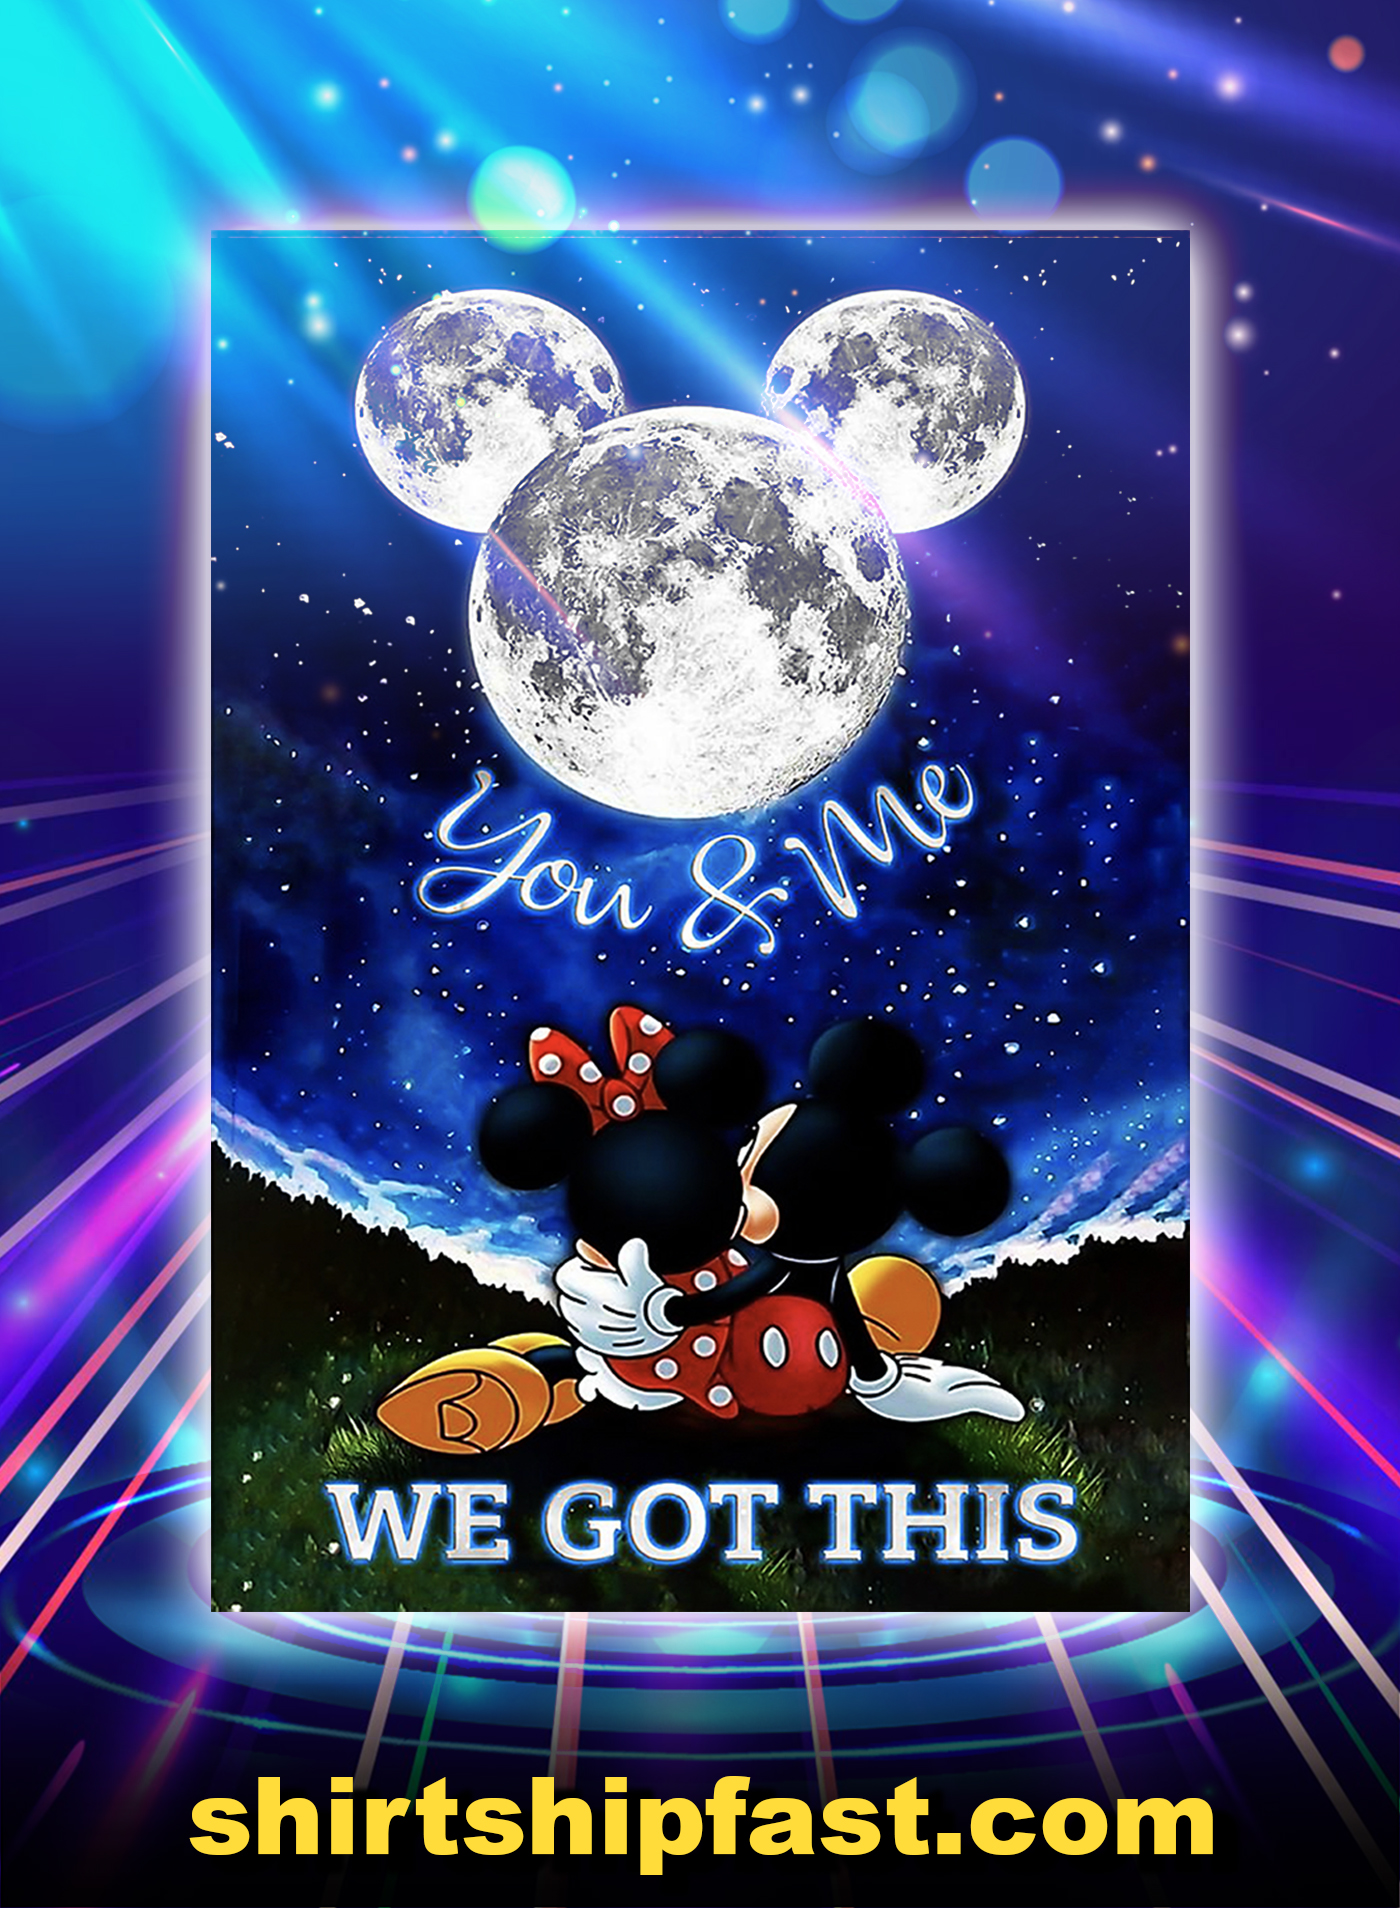 Moon Night Mickey And Minnie You And Me We Got This Poster - A1